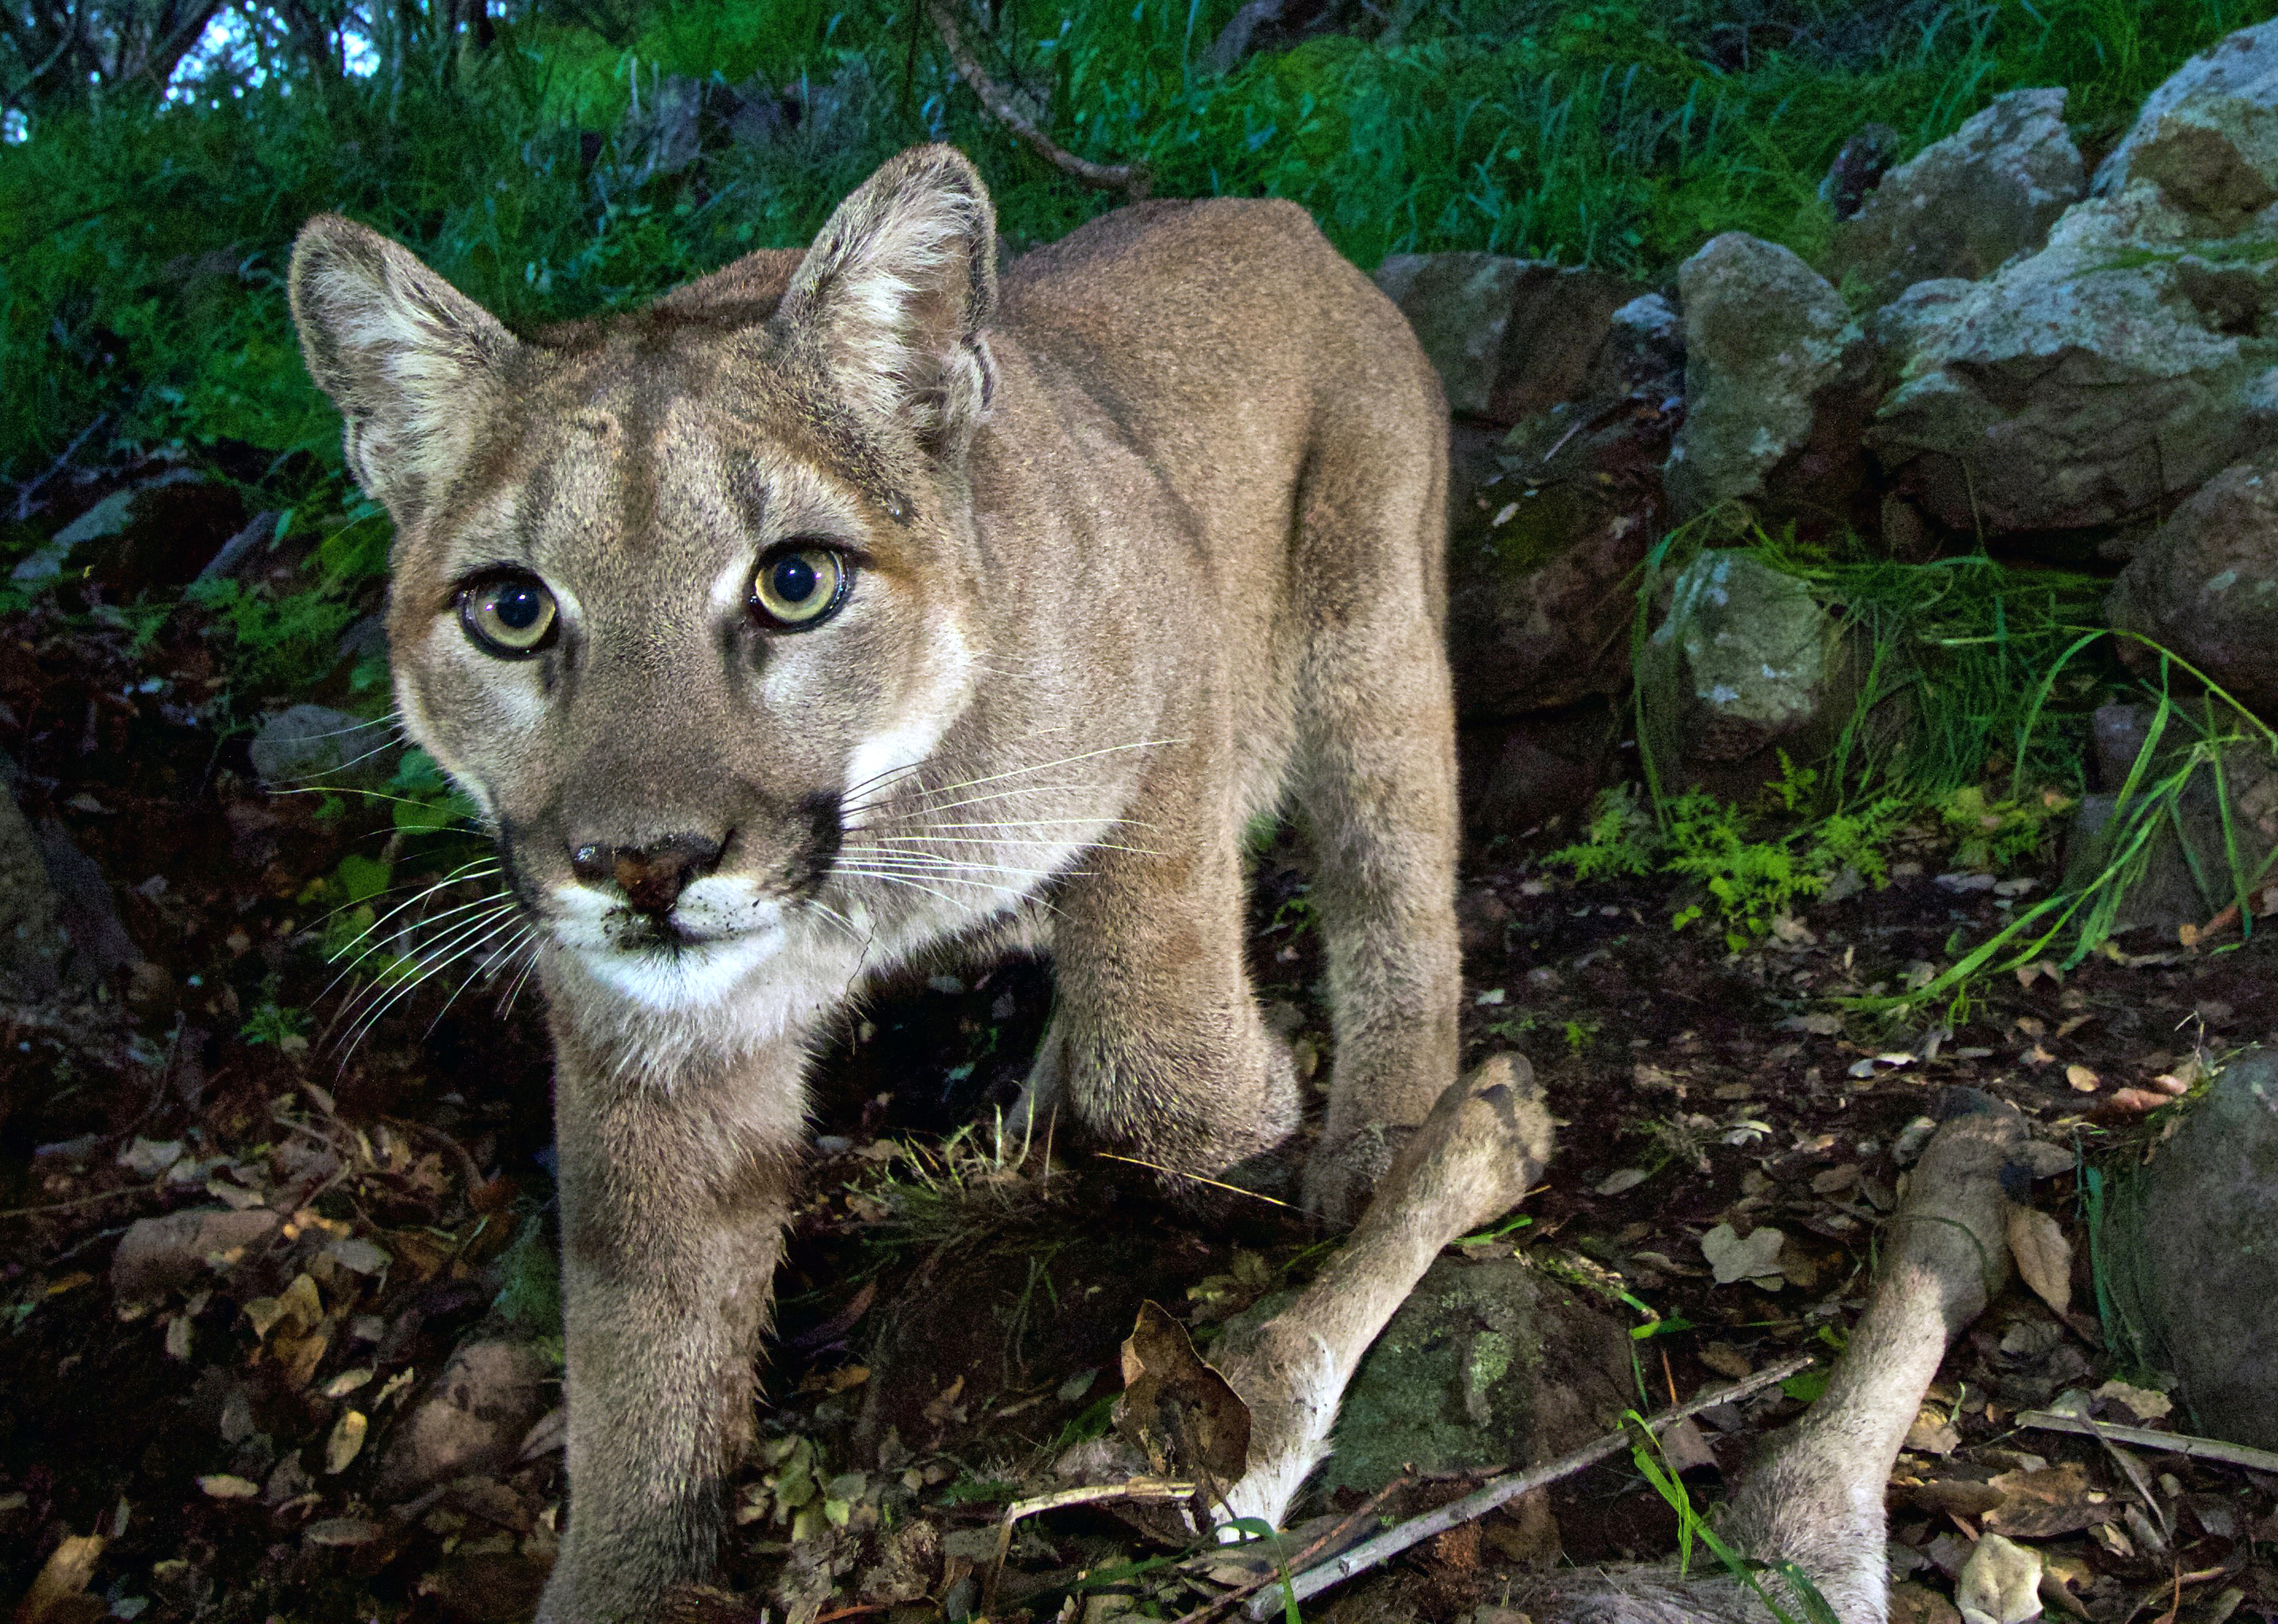 The Colorado boy was attacked by a mountain lion (though not this particular animal, photographed by the National Park Service in California's Santa Monica Mountains National Recreation Area). HOPD/AP